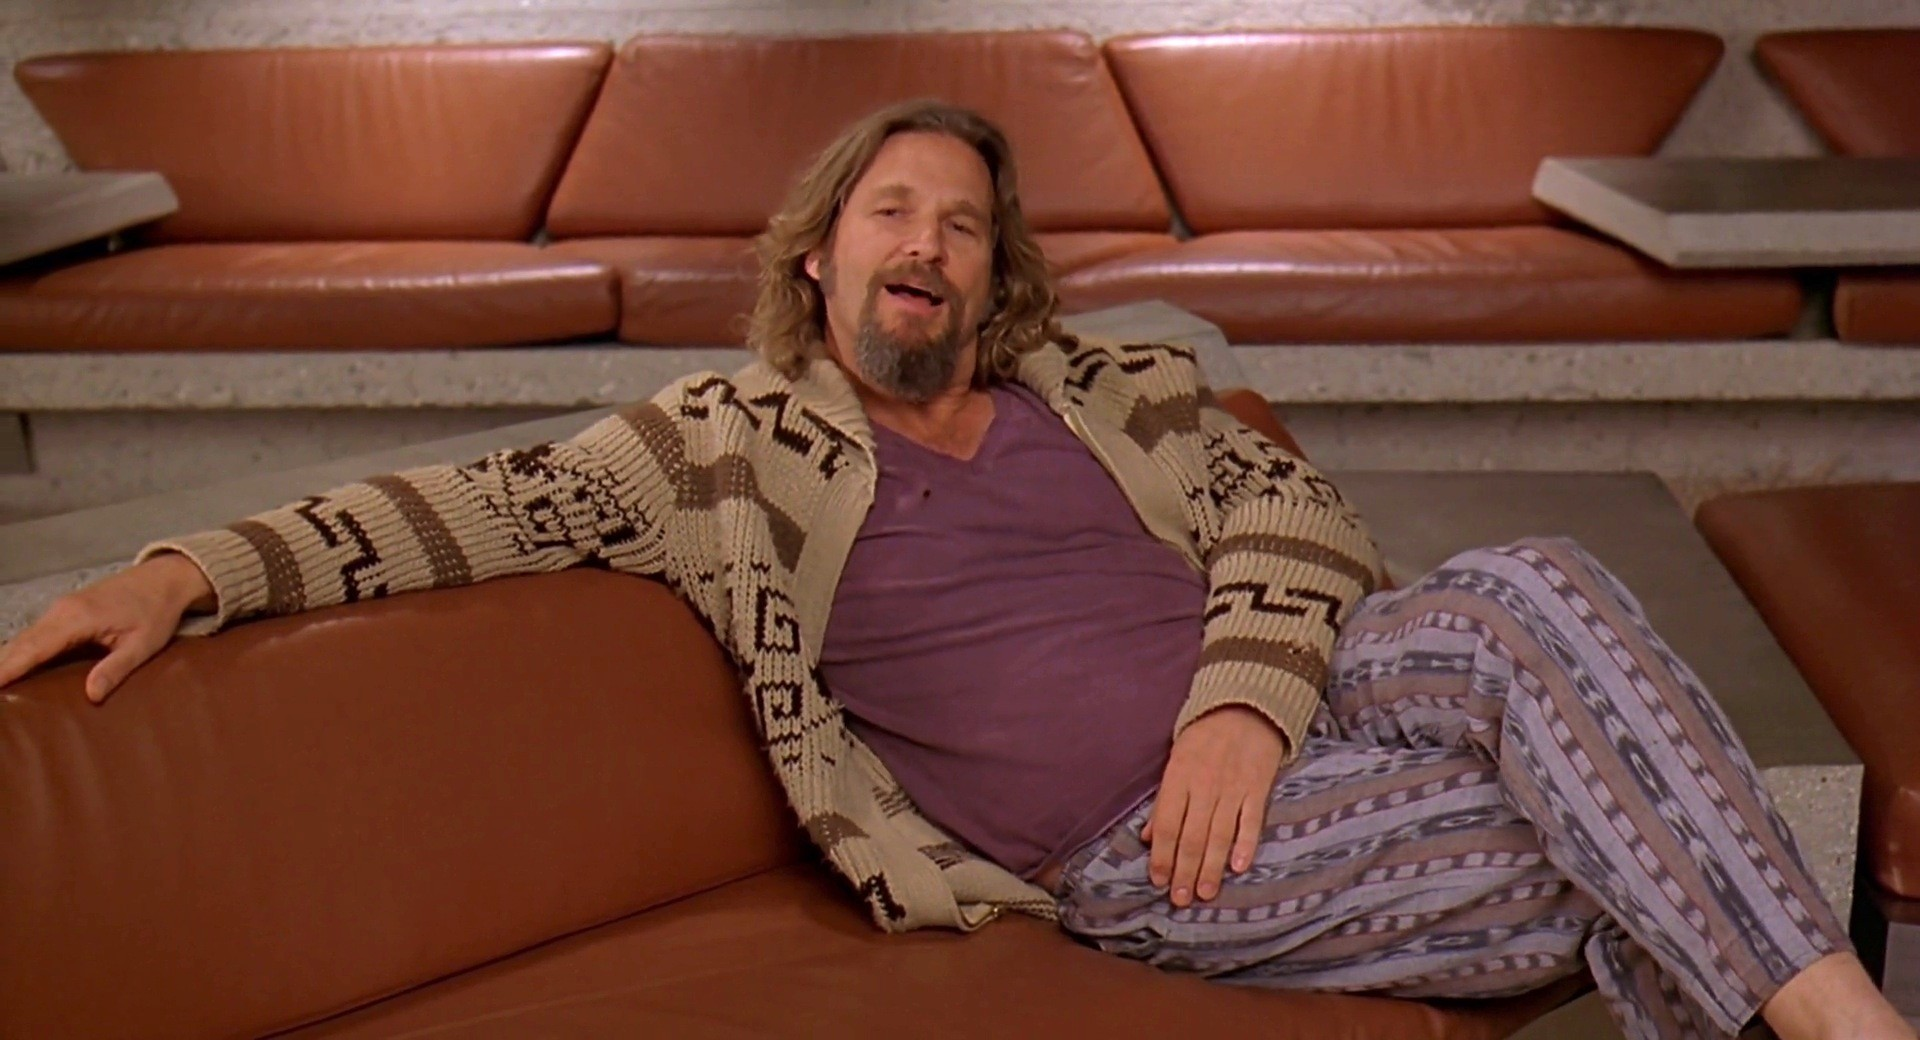 the dude makes for a fine halloween costume for your resident pot smokers